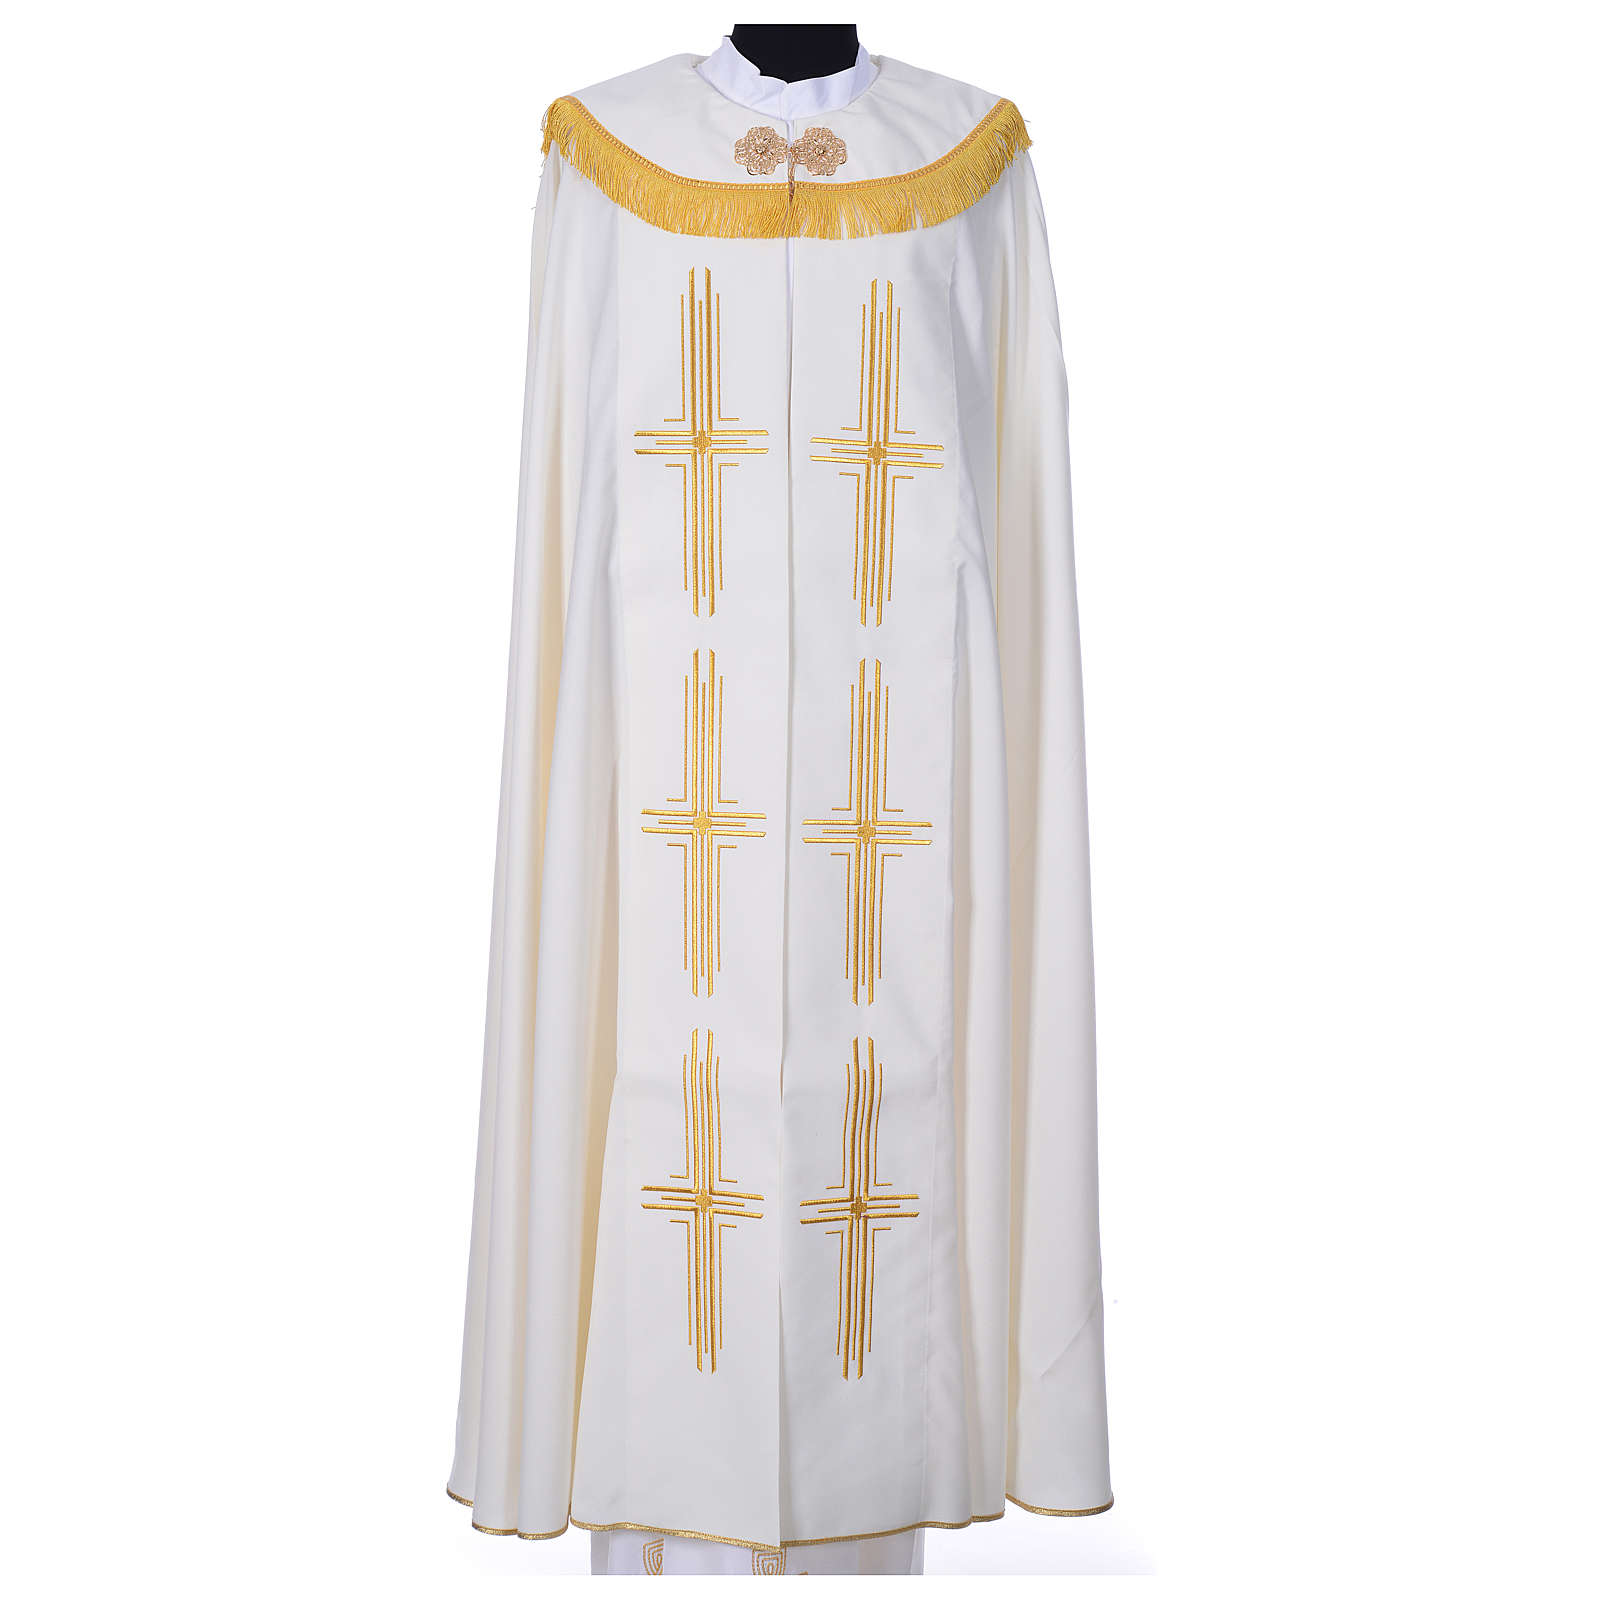 Cope in polyester with 6 crosses embroidery 4